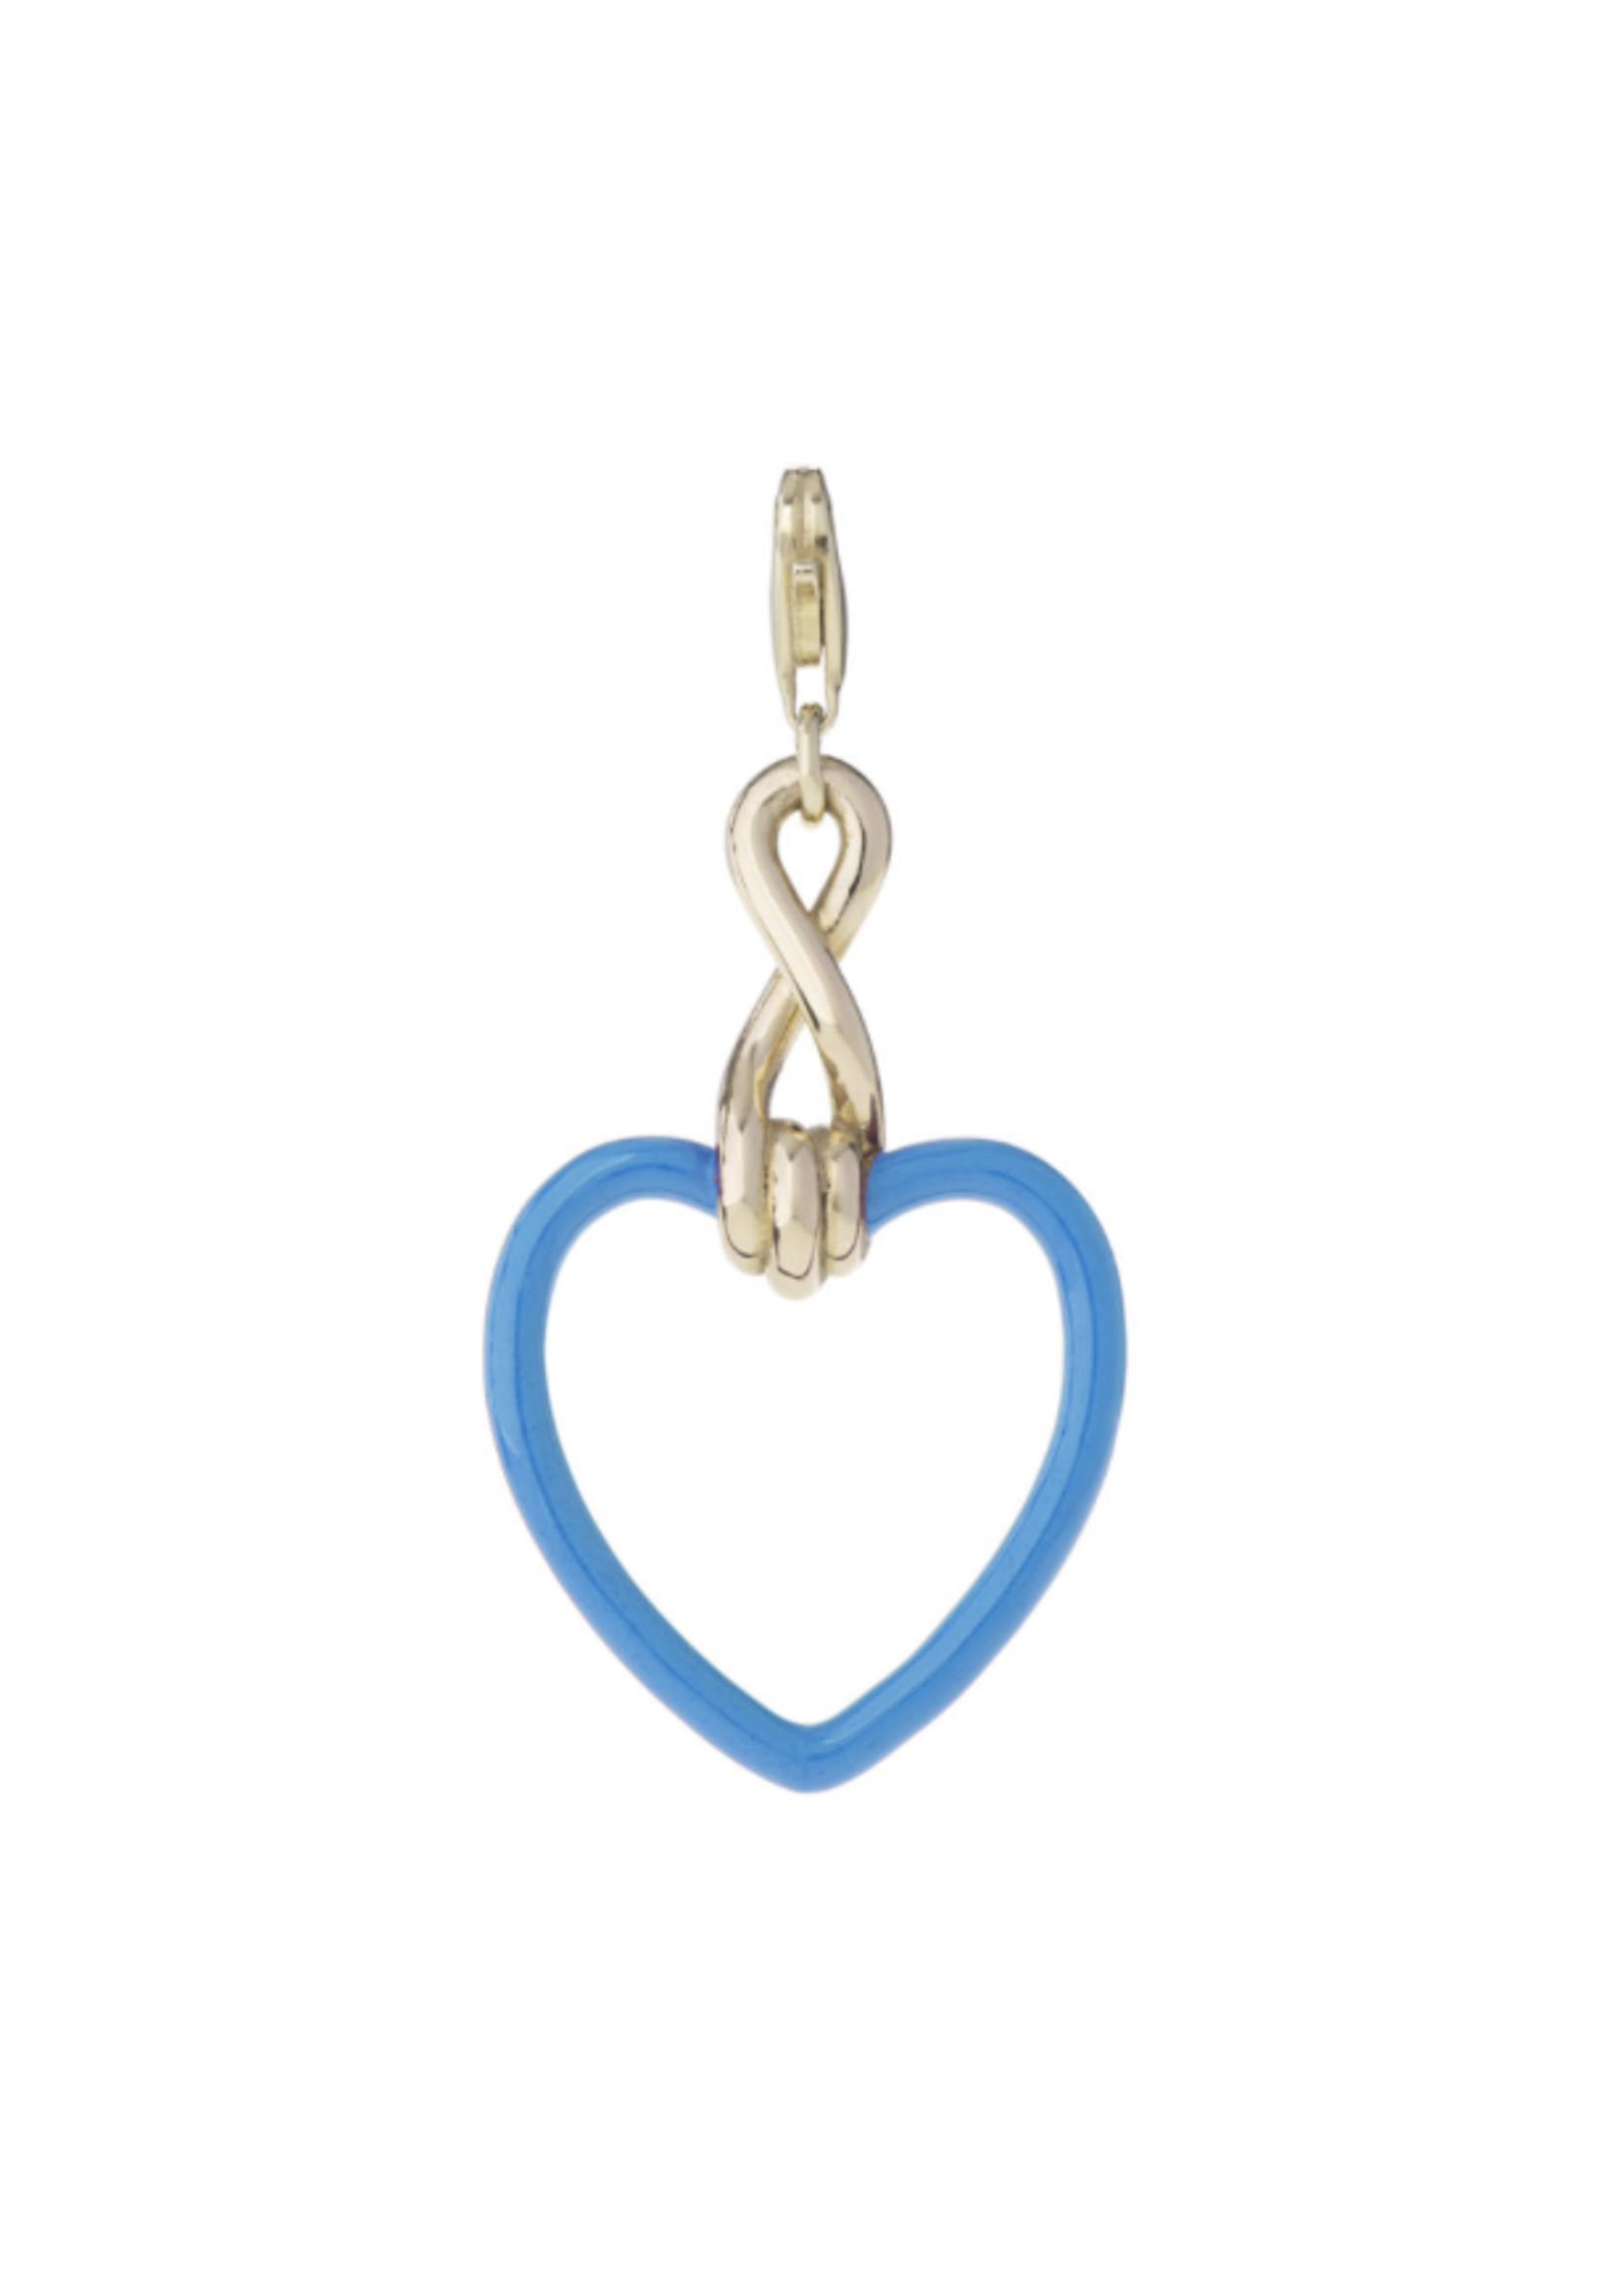 Have a Heart Large Heart Charm